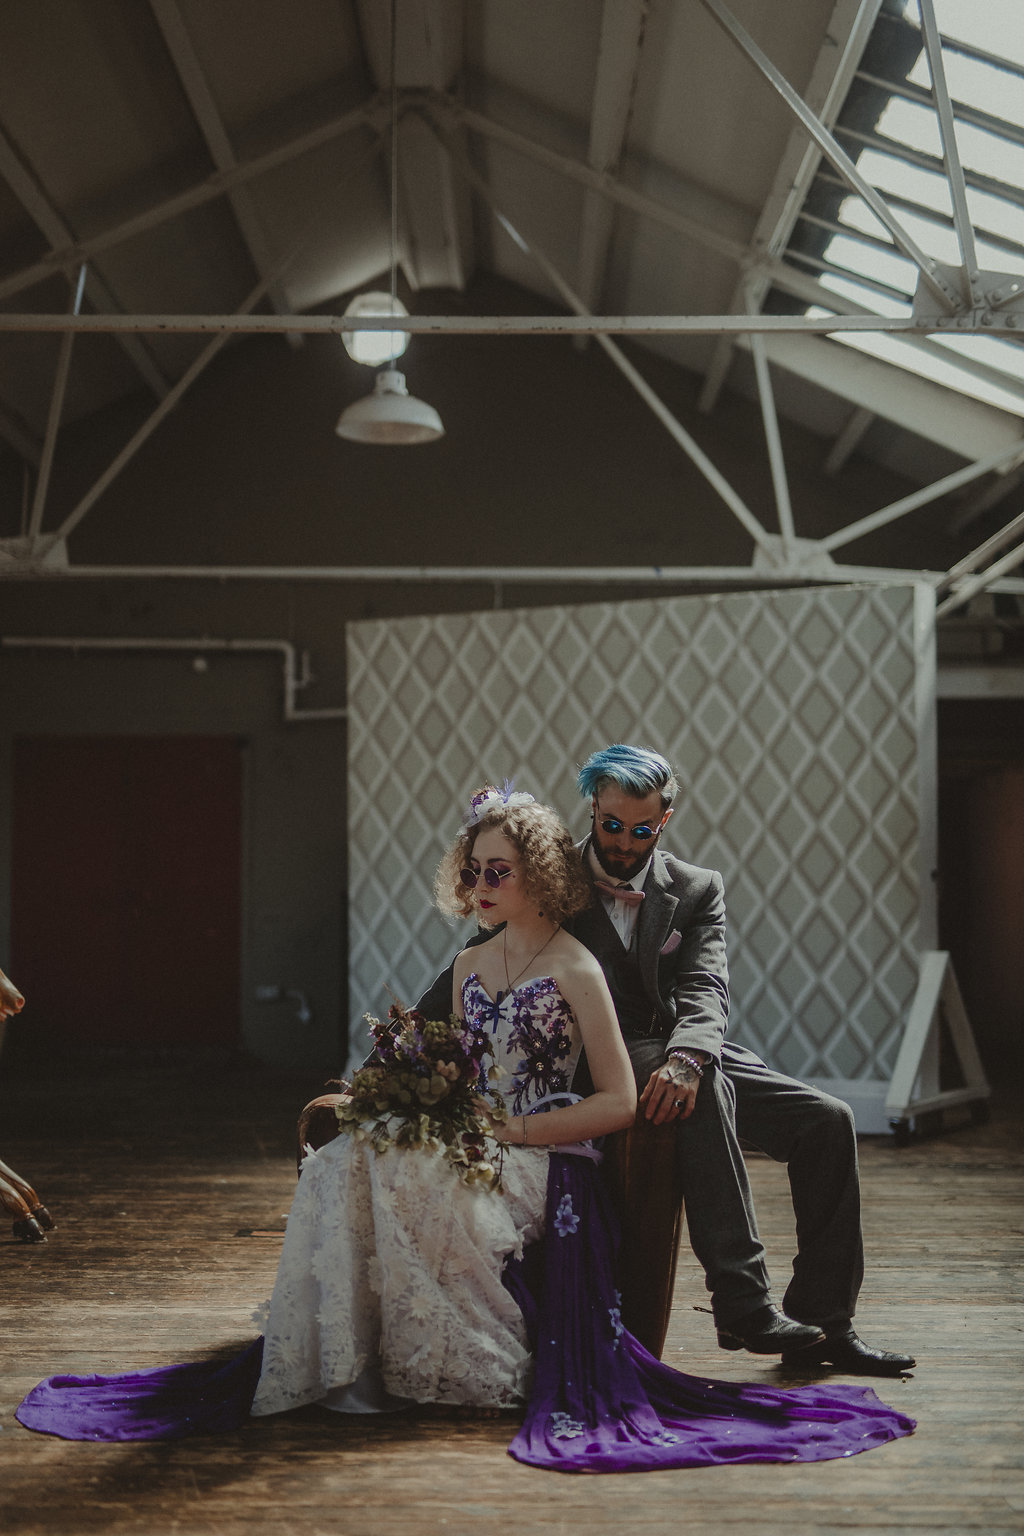 Studio Fotografico Bacci - Steampunk wedding - alternative wedding 64